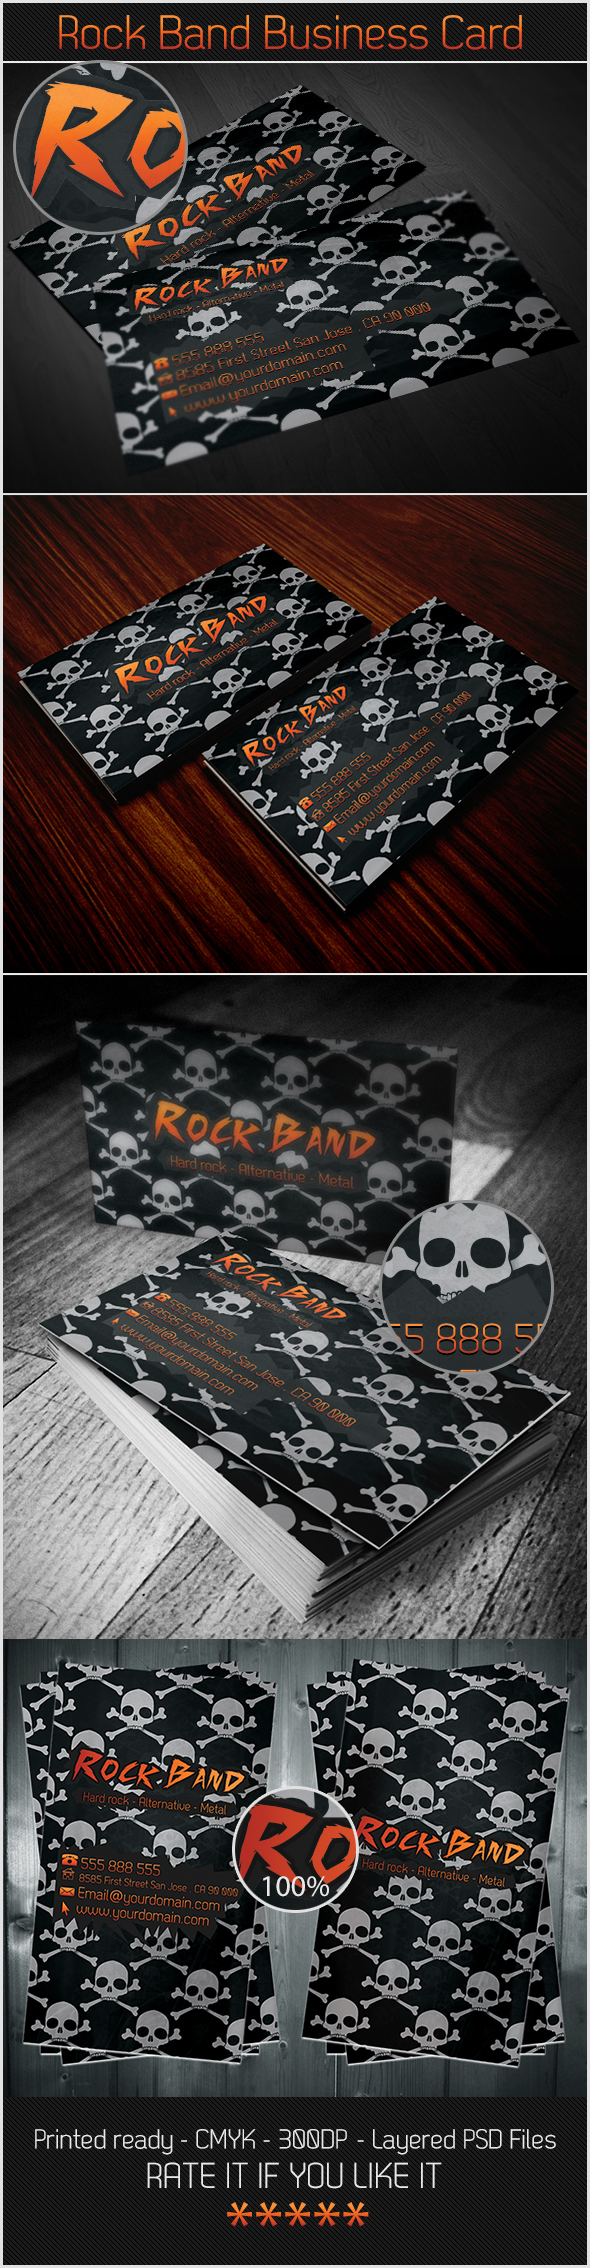 Rock Band Business Card by karimmove on DeviantArt